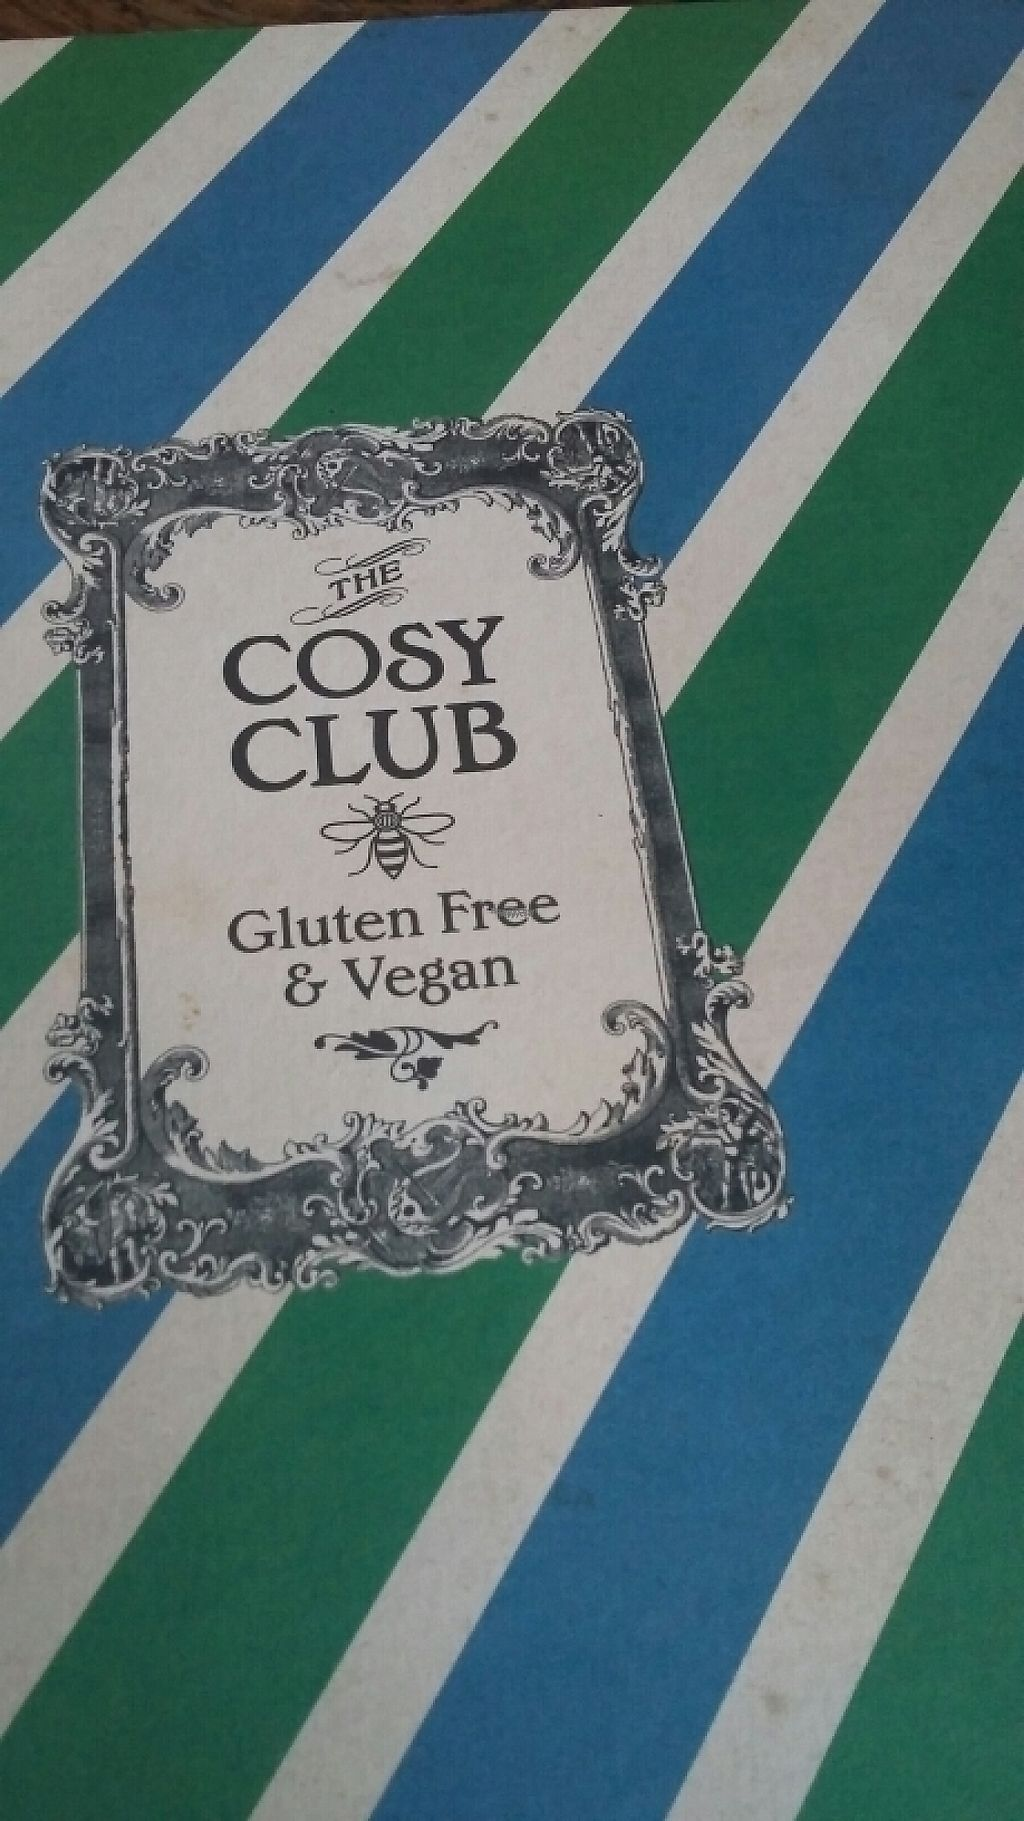 "Photo of The Cosy Club  by <a href=""/members/profile/Vegan-Vinyl-Avengers"">Vegan-Vinyl-Avengers</a> <br/>Cosy Club <br/> November 27, 2016  - <a href='/contact/abuse/image/54595/195136'>Report</a>"